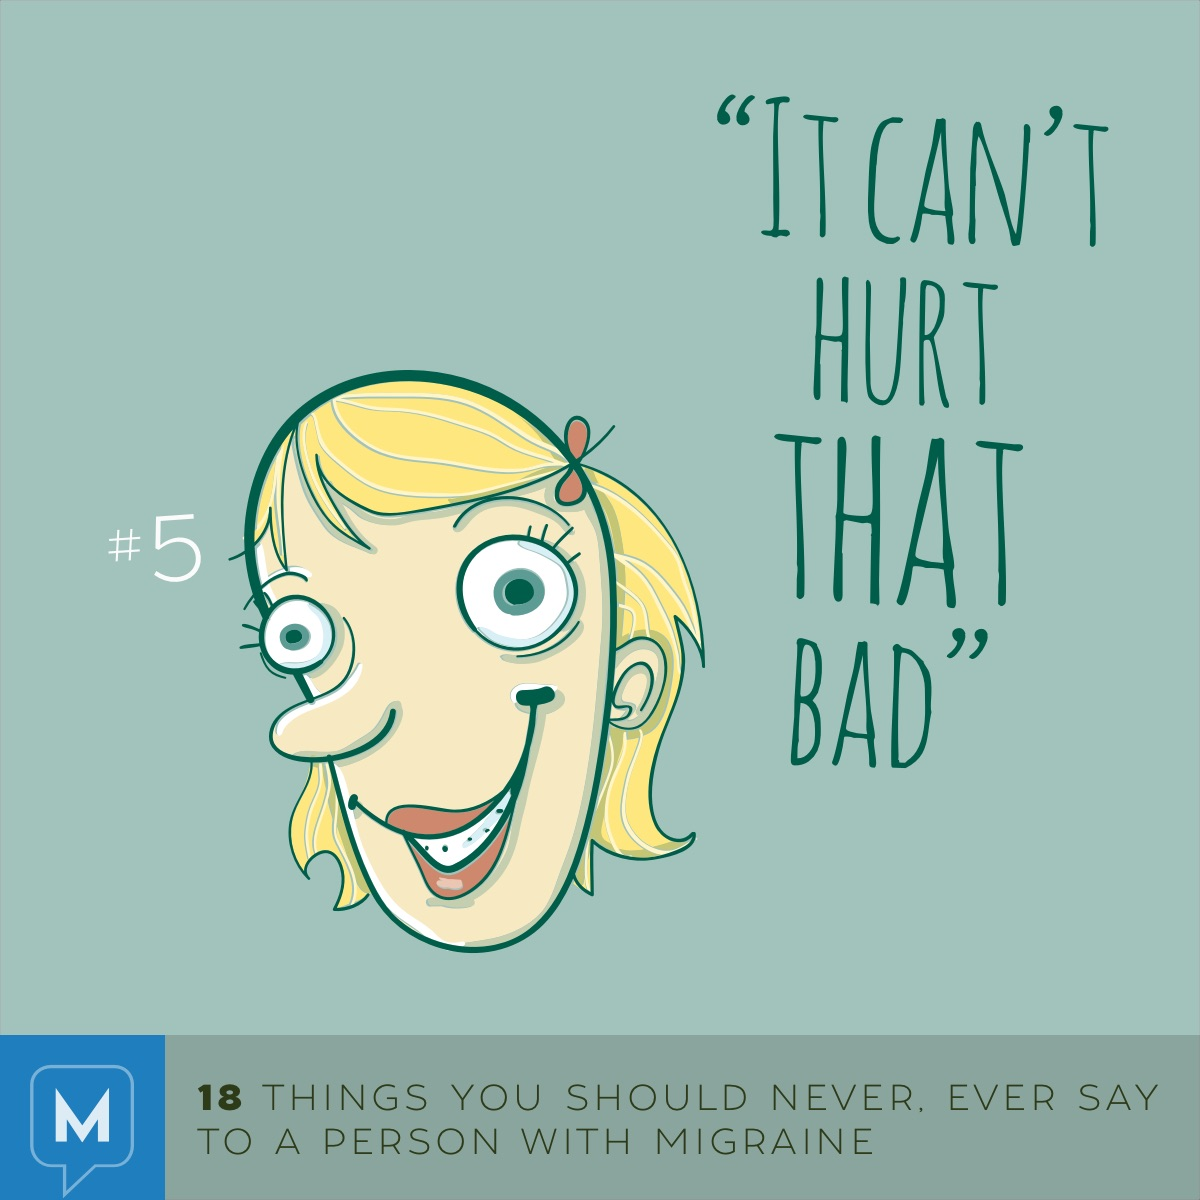 18 things not to say to a person with migraine | migraine